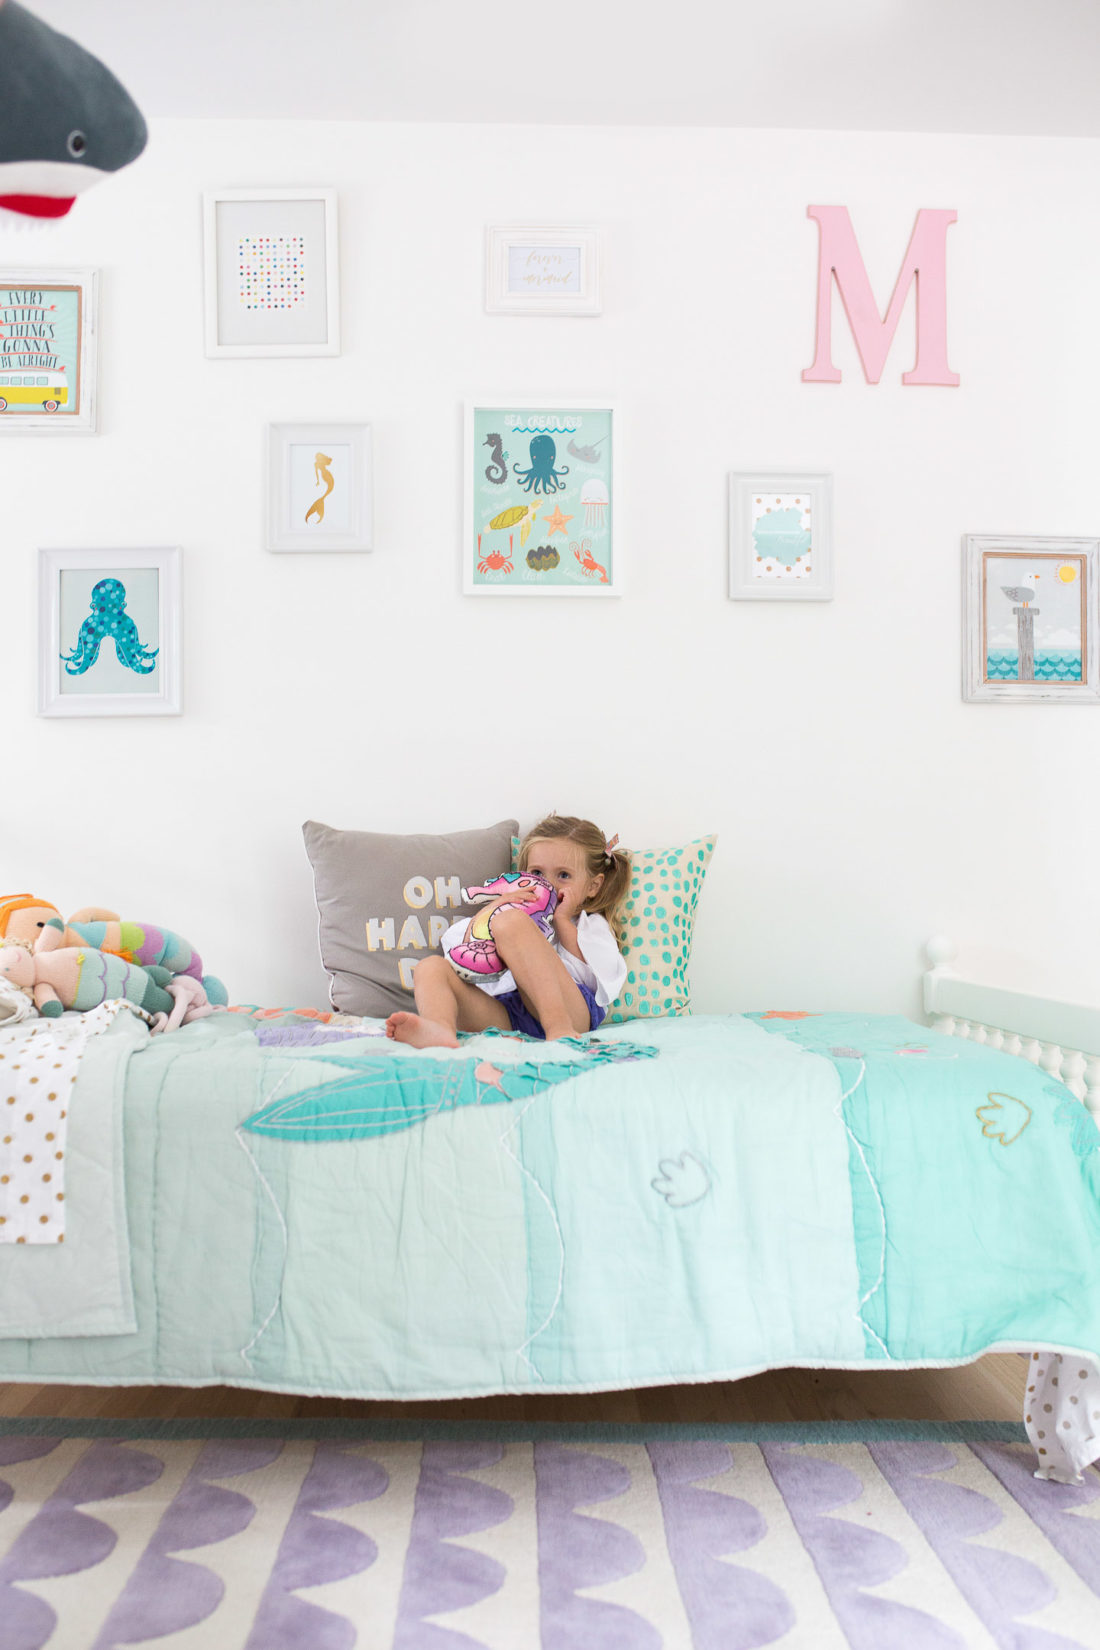 Eva Amurri Martino shares the new design of her three year old daughter's Connecticut mermaid bedroom with the added big girl bed instead of a crib